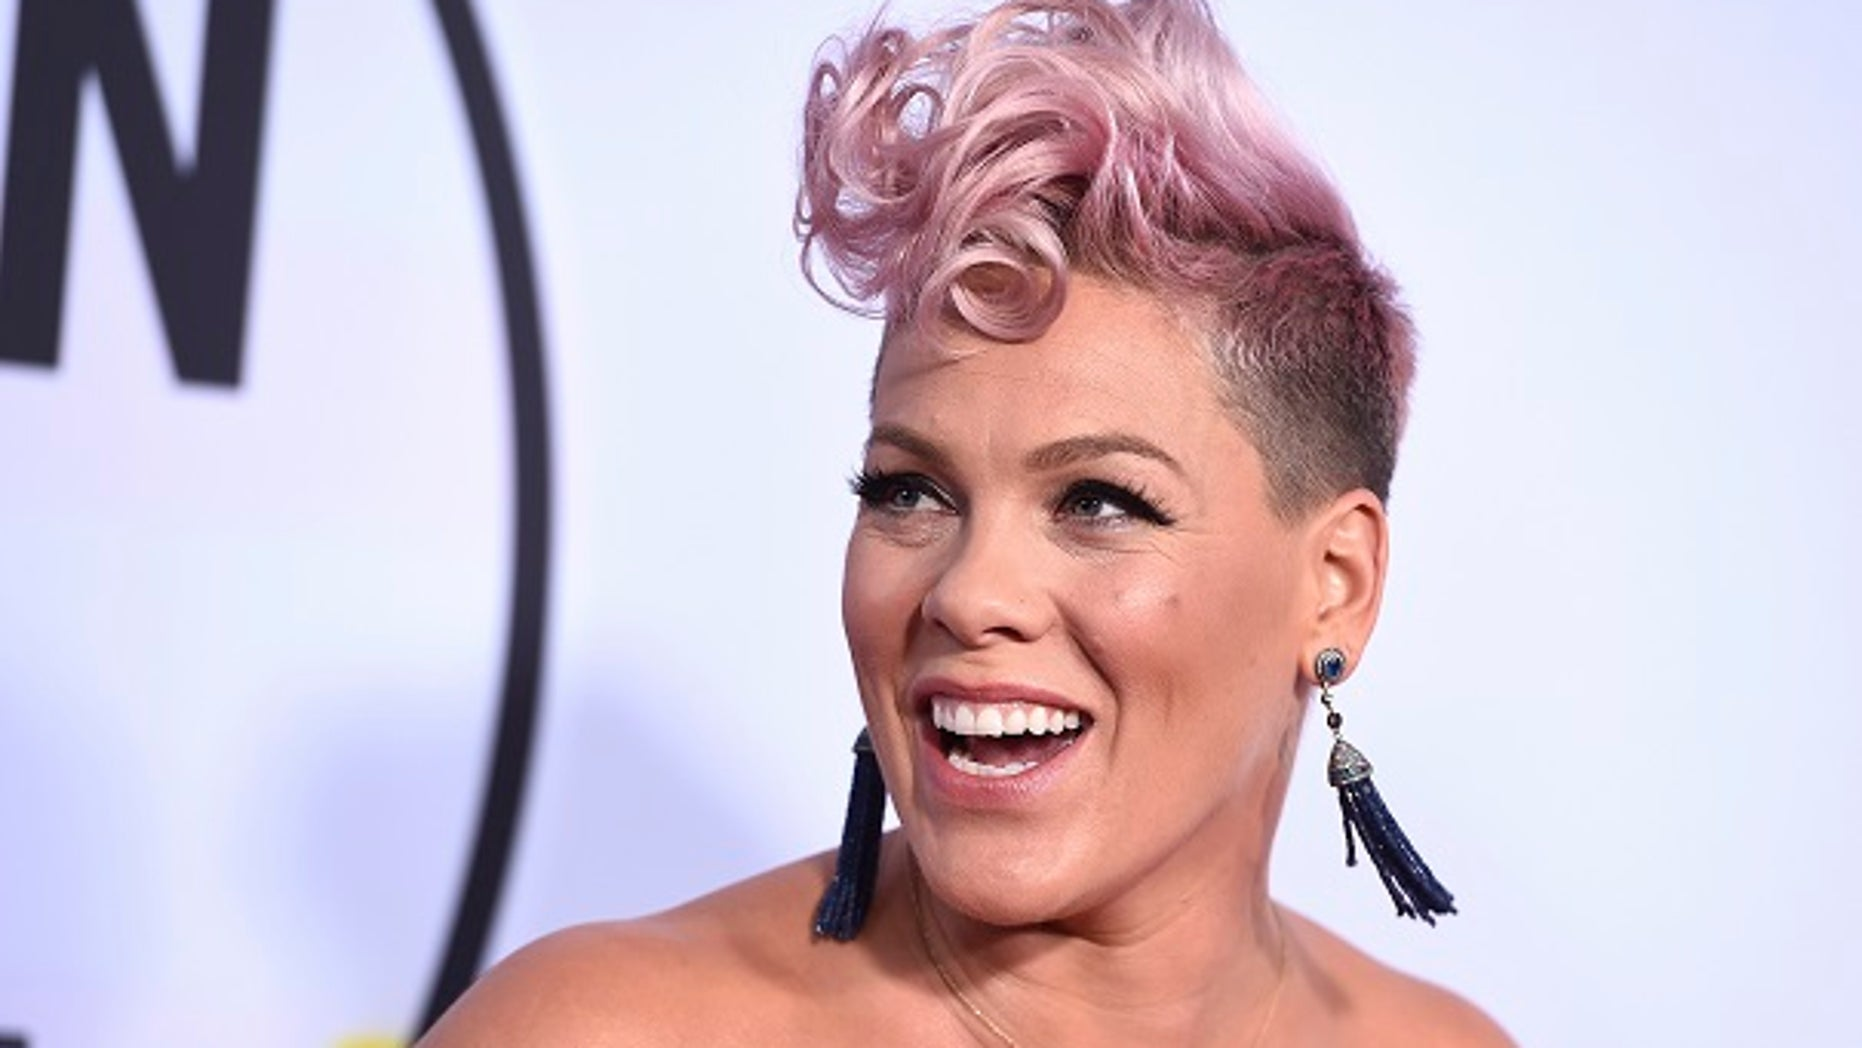 Pink is set to perform at Super Bowl LII.